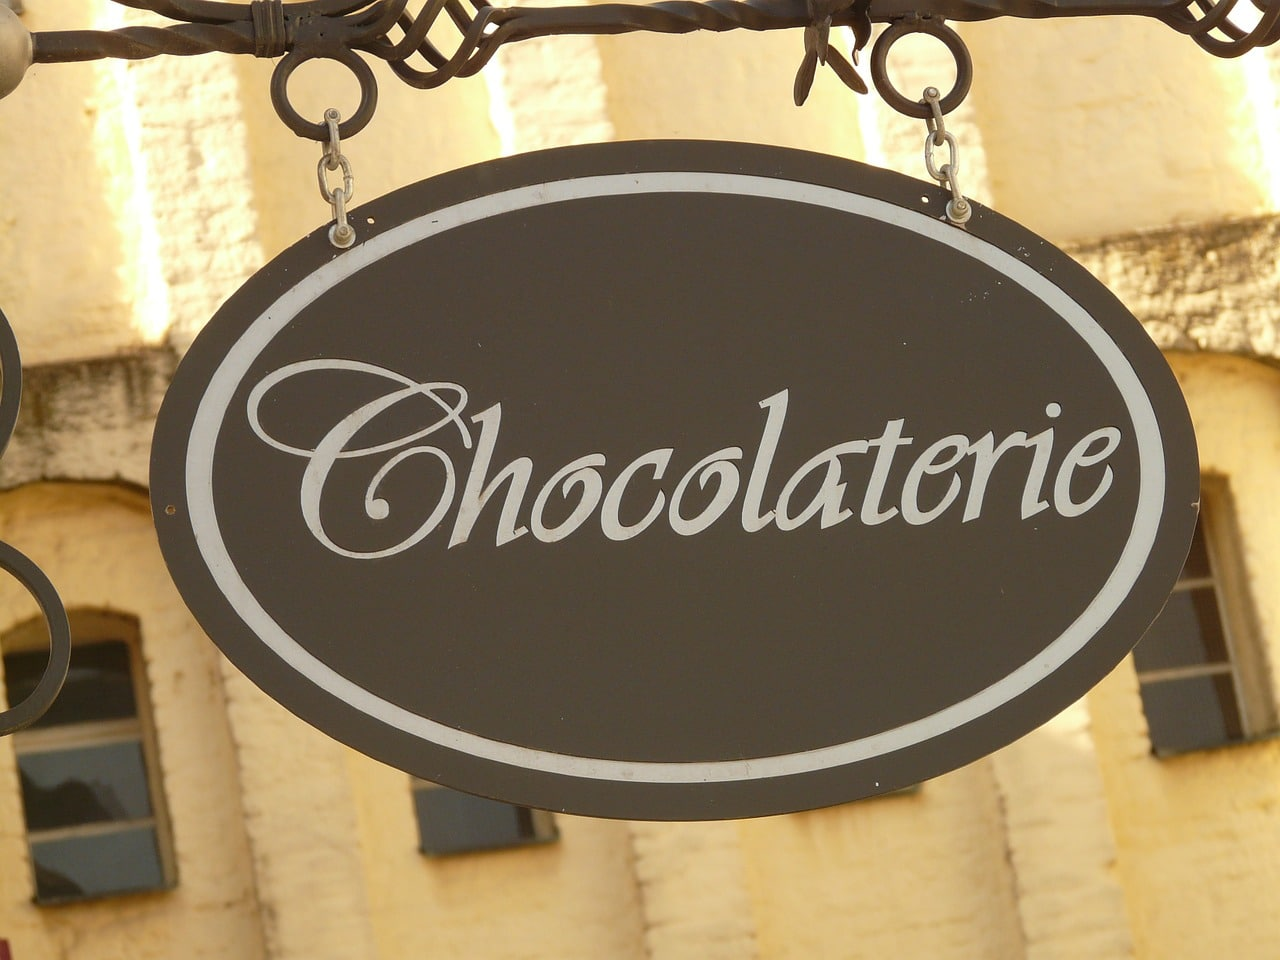 Chocolate Manufacturing opportunity